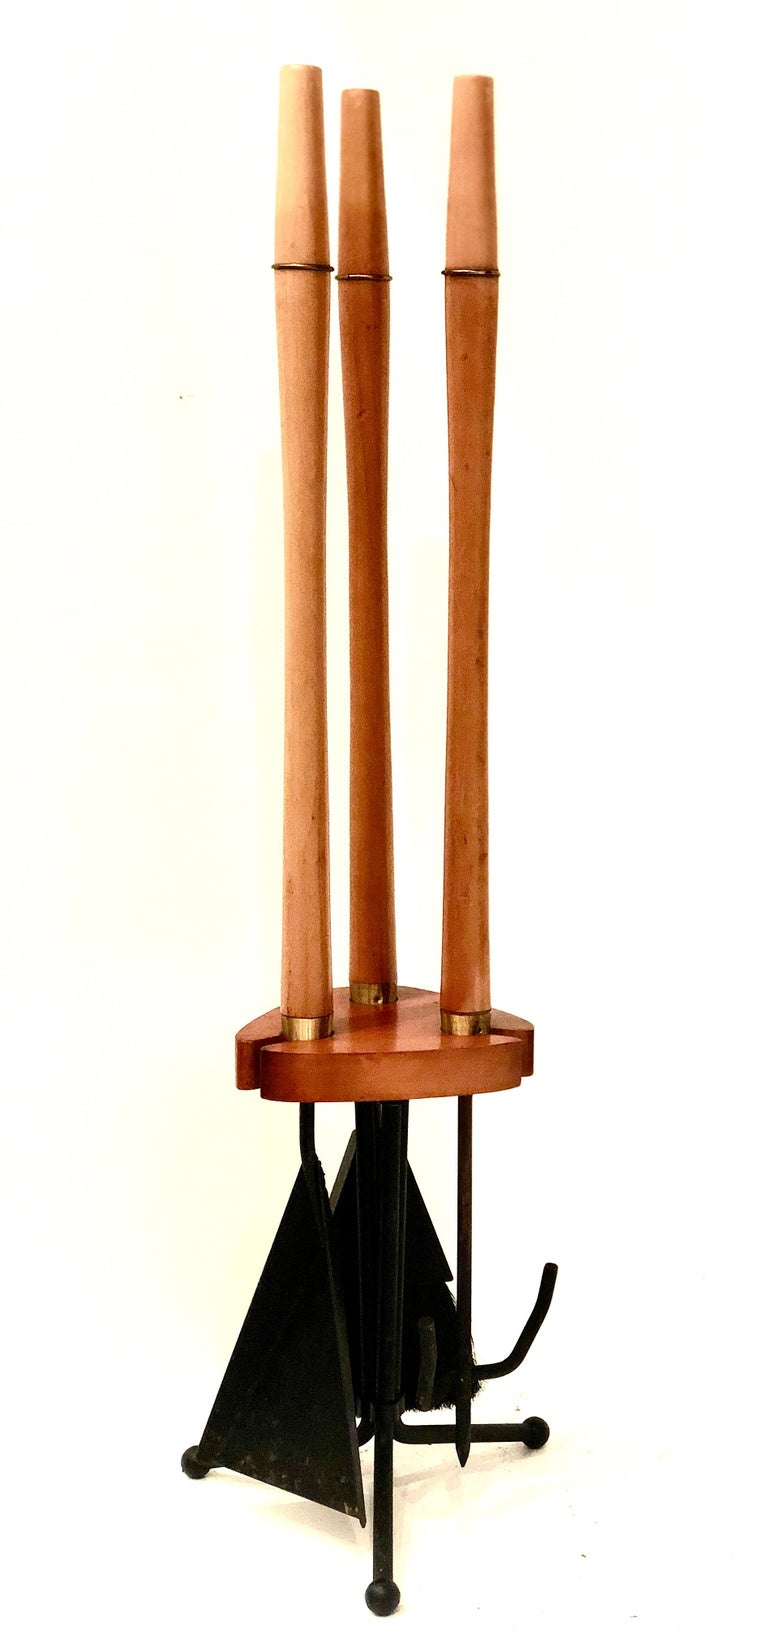 1950s Atomic Age Wood and Iron Fireplace Accessory Tool Set In Good Condition For Sale In San Diego, CA